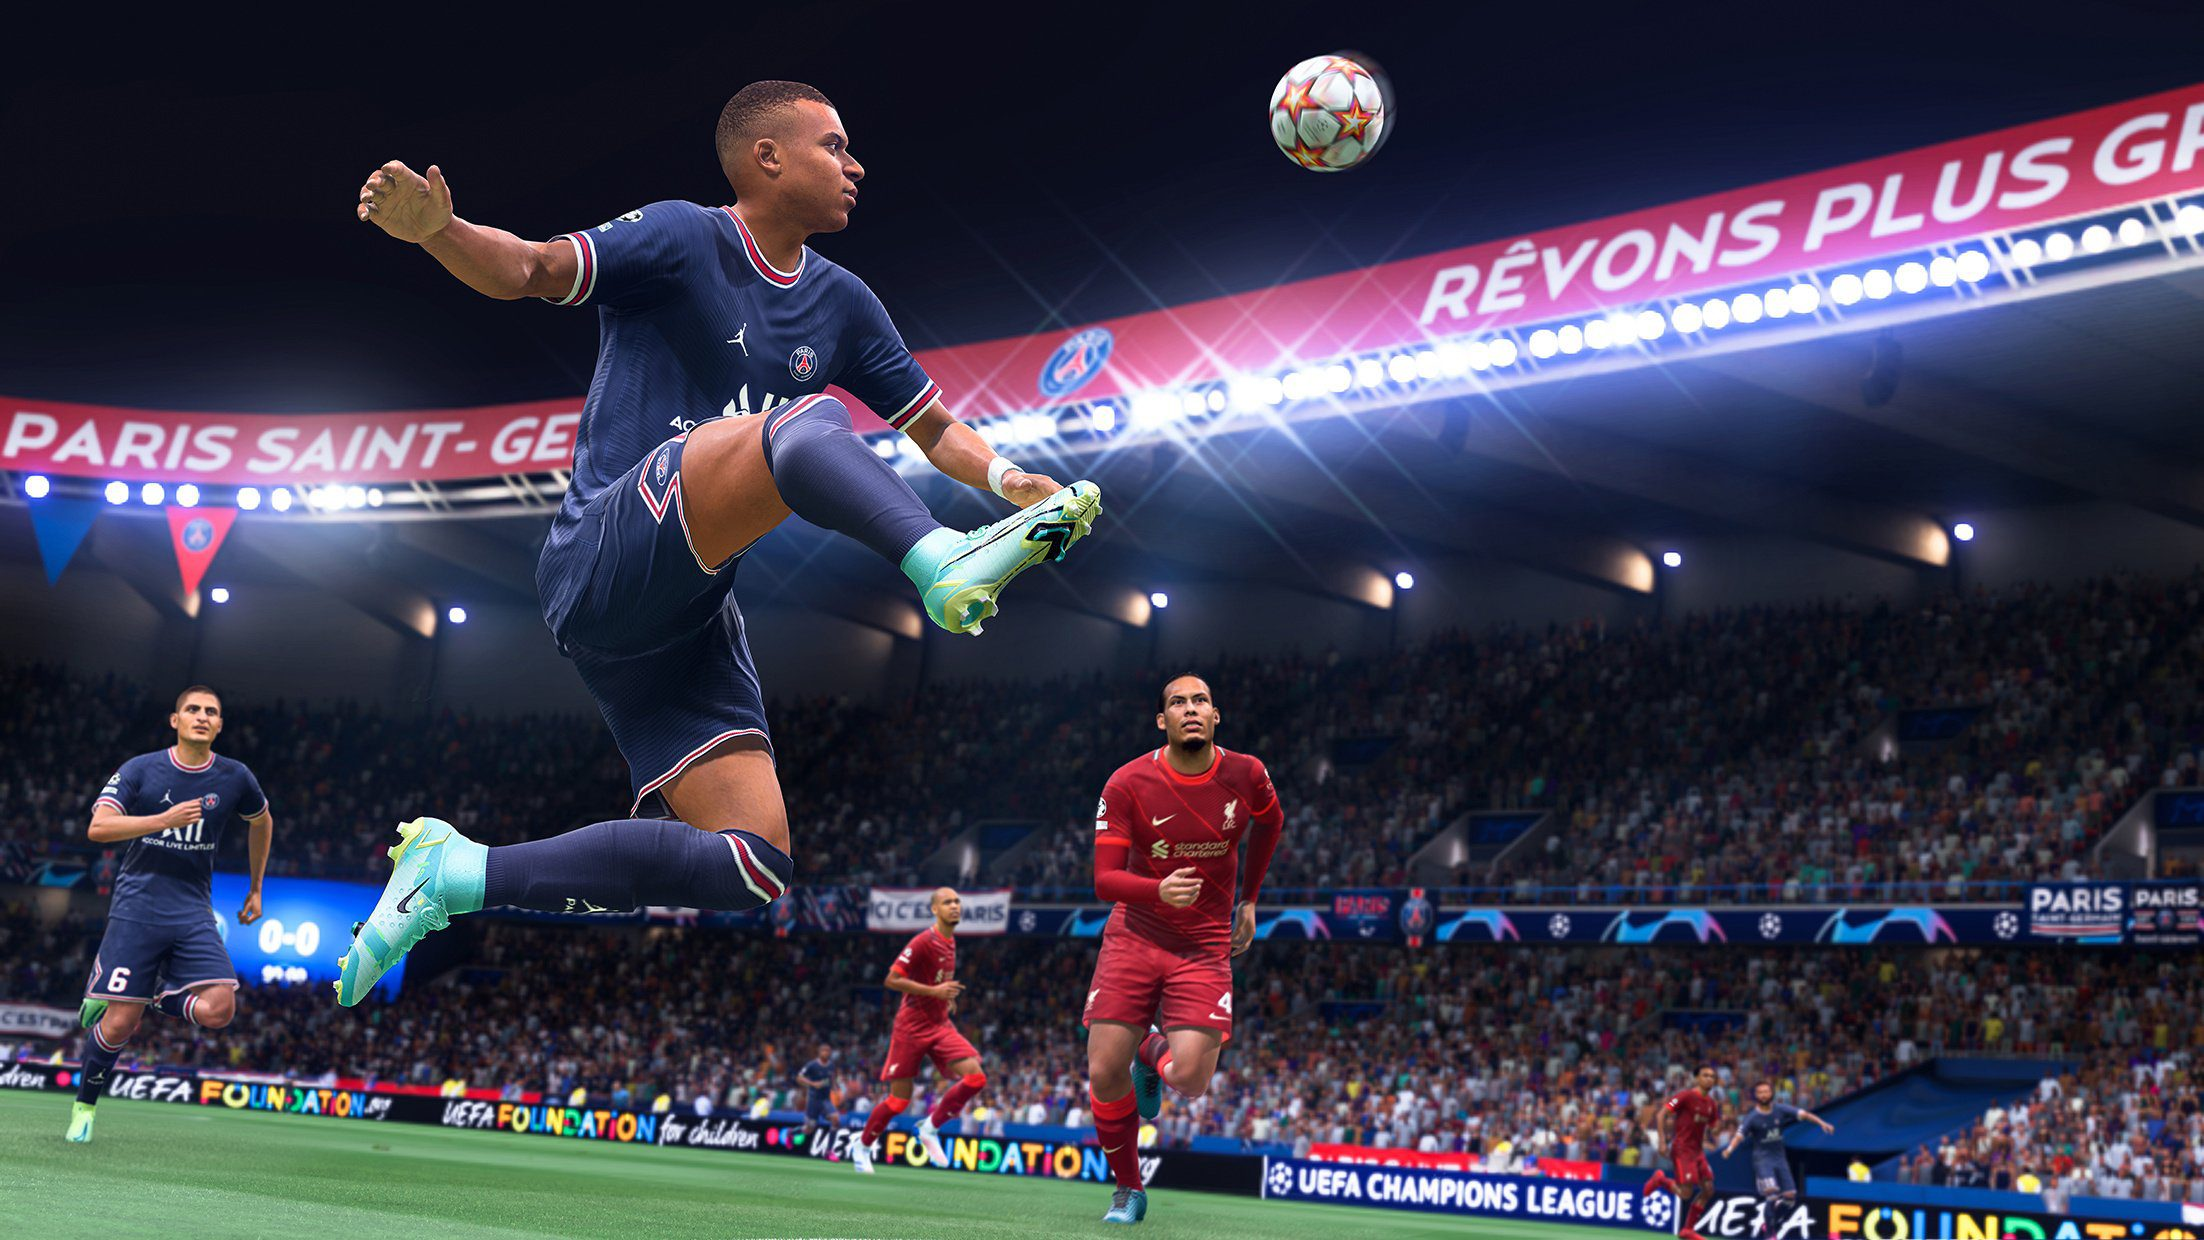 fifa 22 10 hour trial release date time